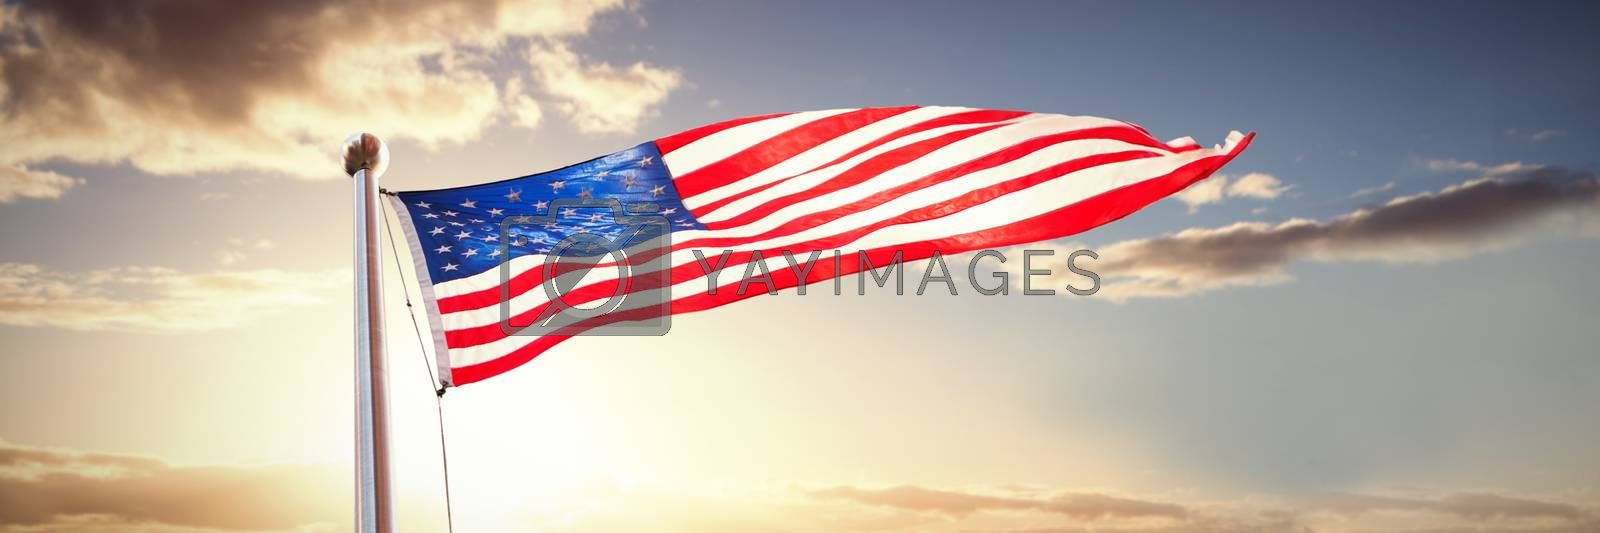 Composite image of american flag waving over white background by Wavebreakmedia